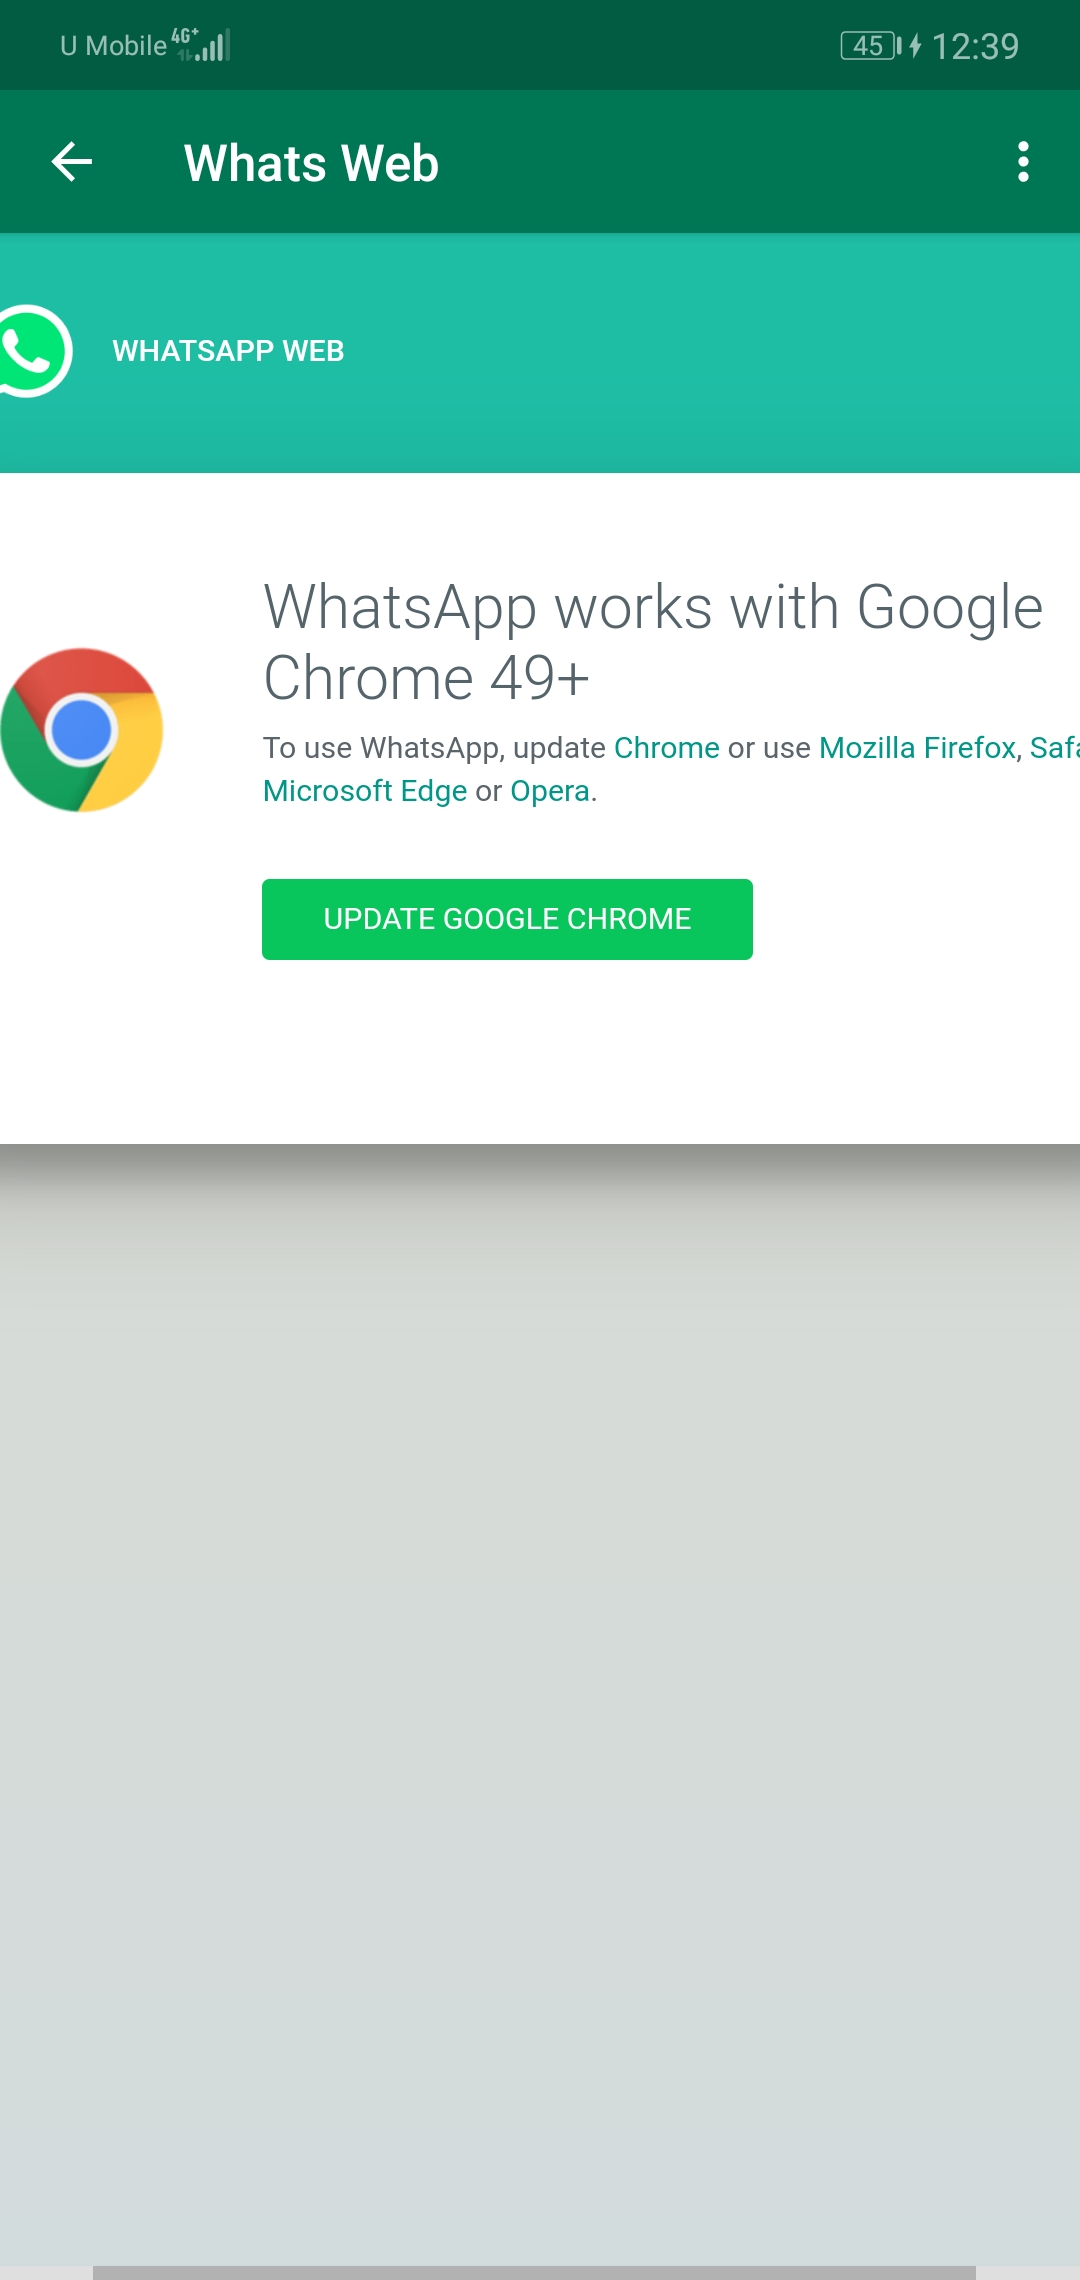 Whats meaning whatsapp work with google chrome 49+